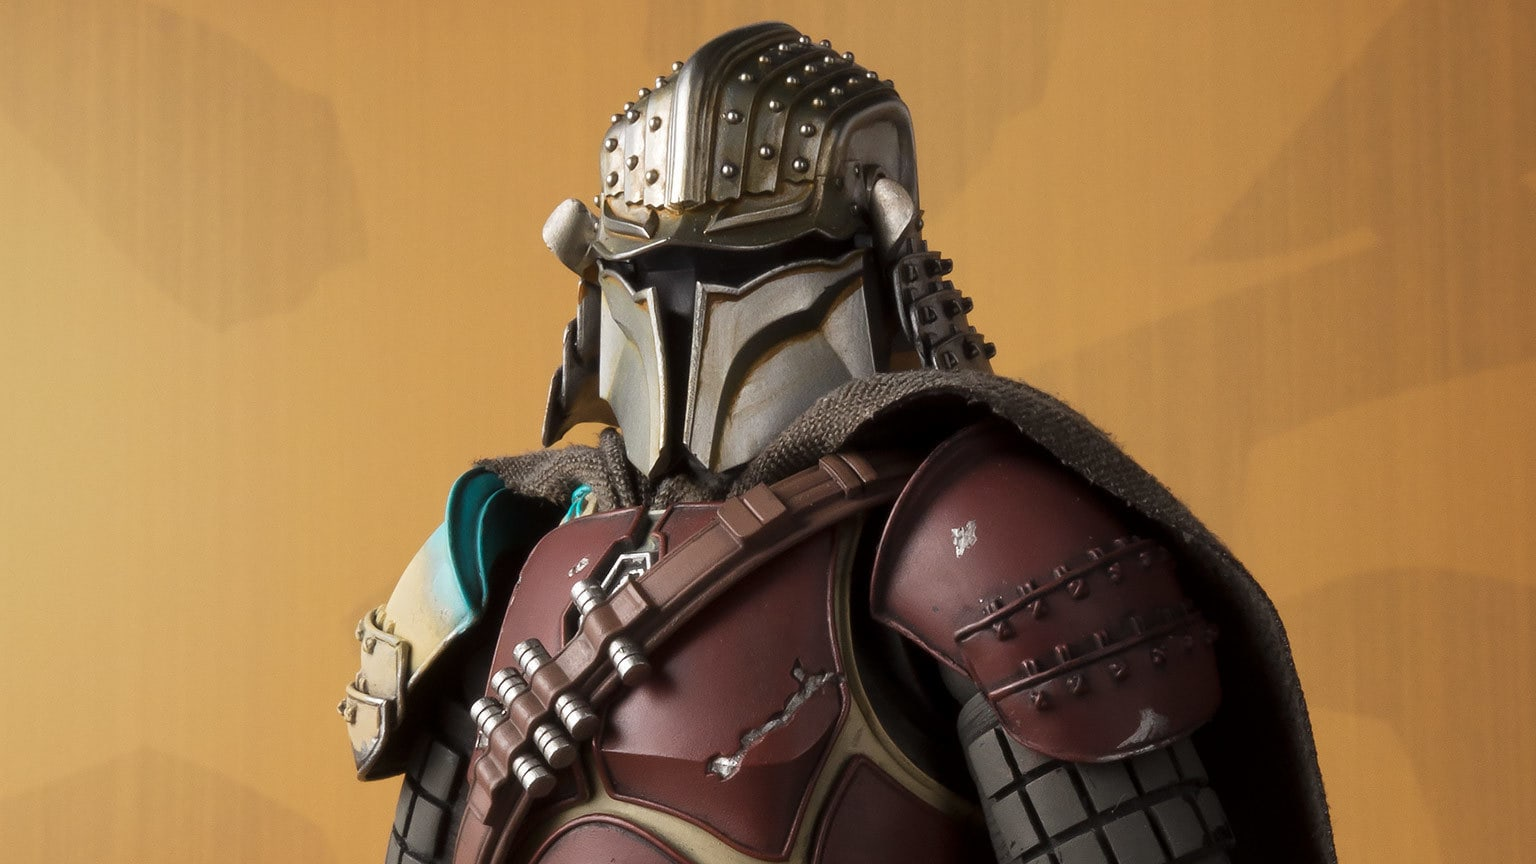 How Bandai Reimagined the Mandalorian as a Samurai Warrior